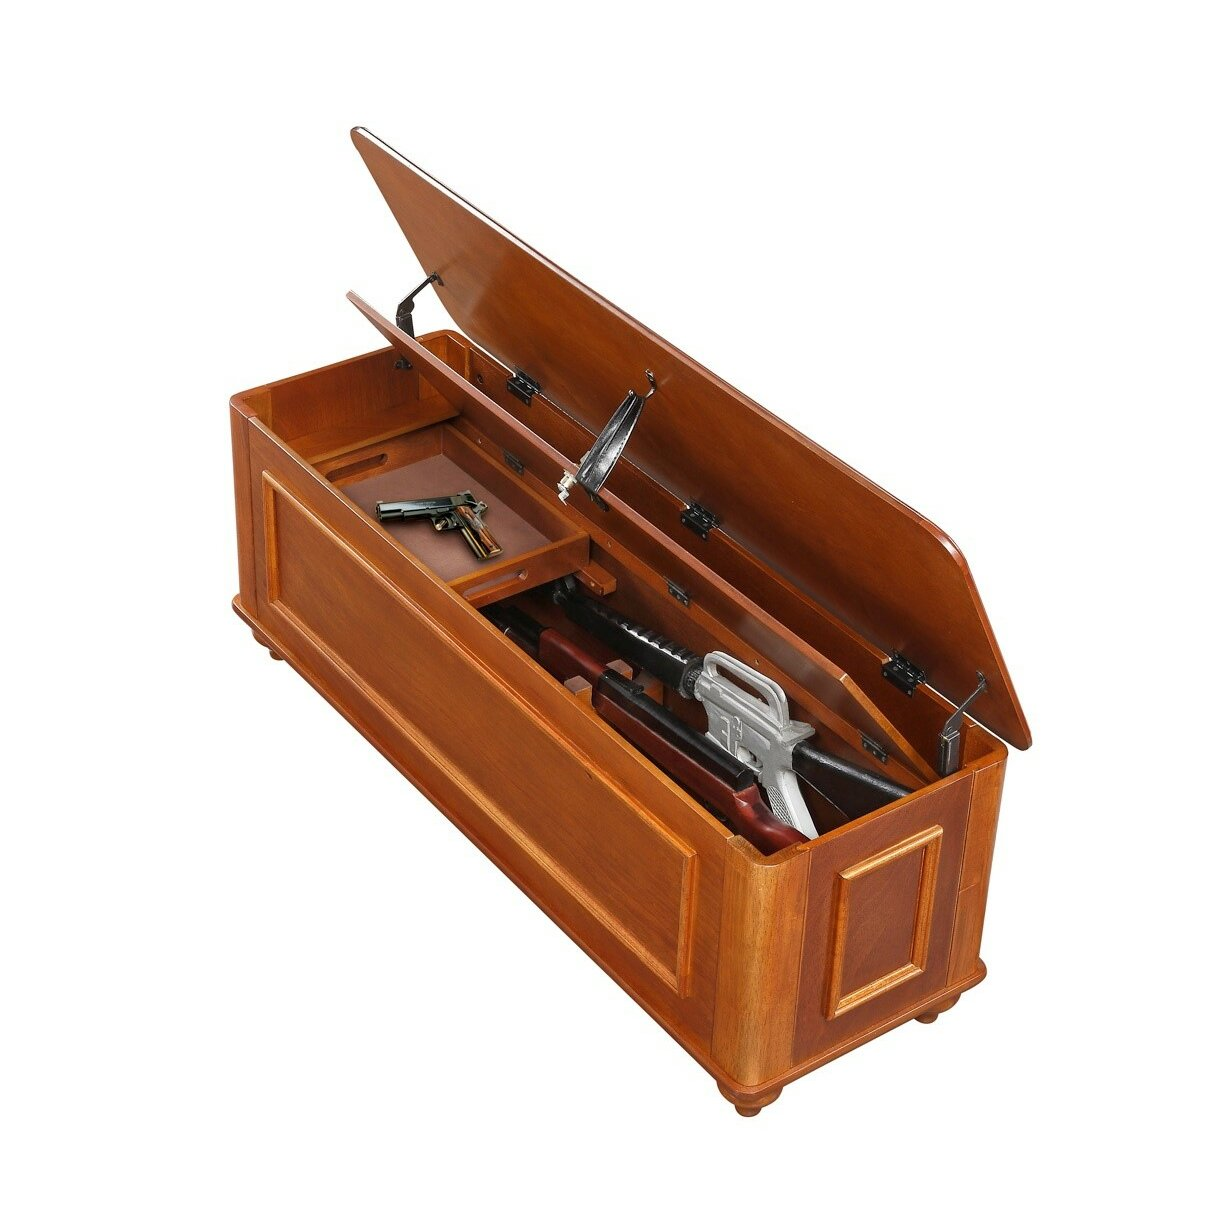 American furniture classics hope chest reviews wayfair for Bedroom furniture gun safe